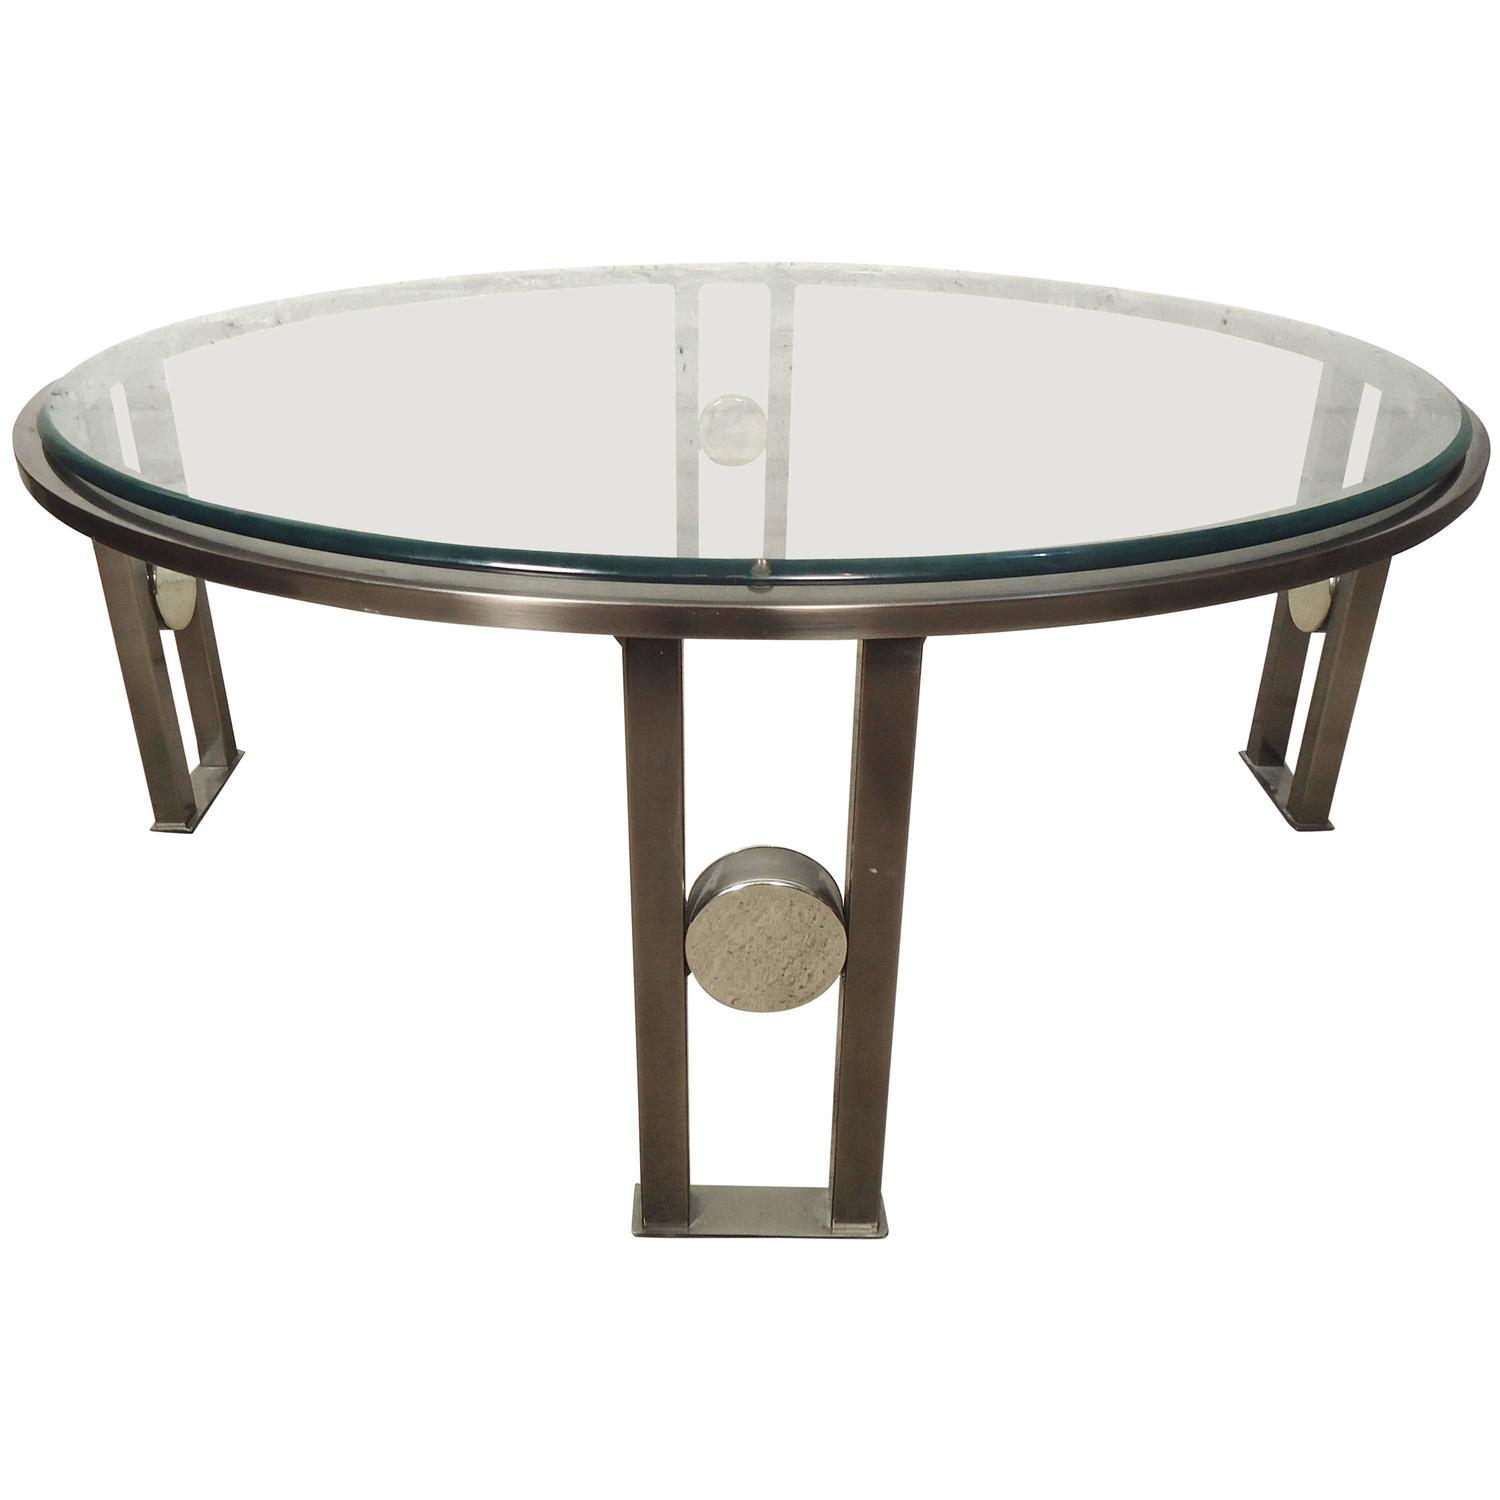 Round glass top coffee table at 1stdibs for Coffee tables glass top